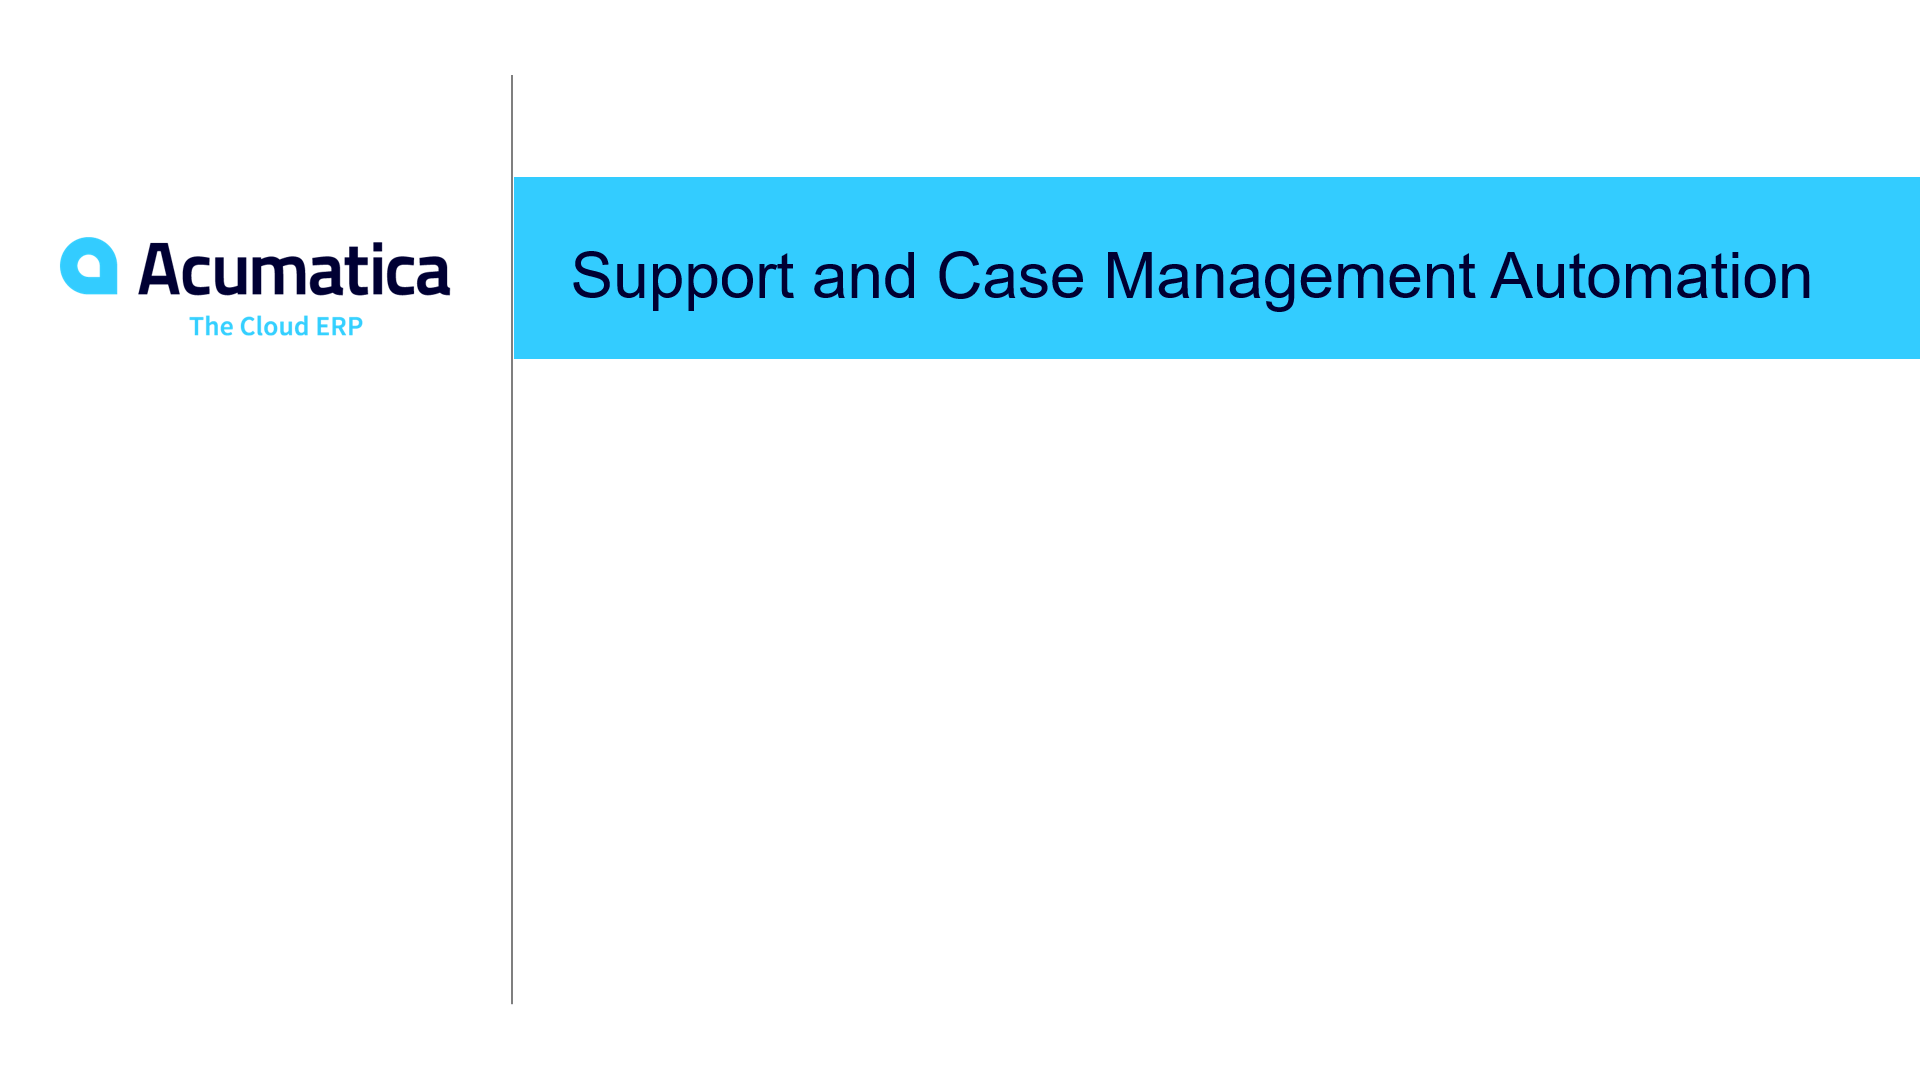 Support and Case Management Automation